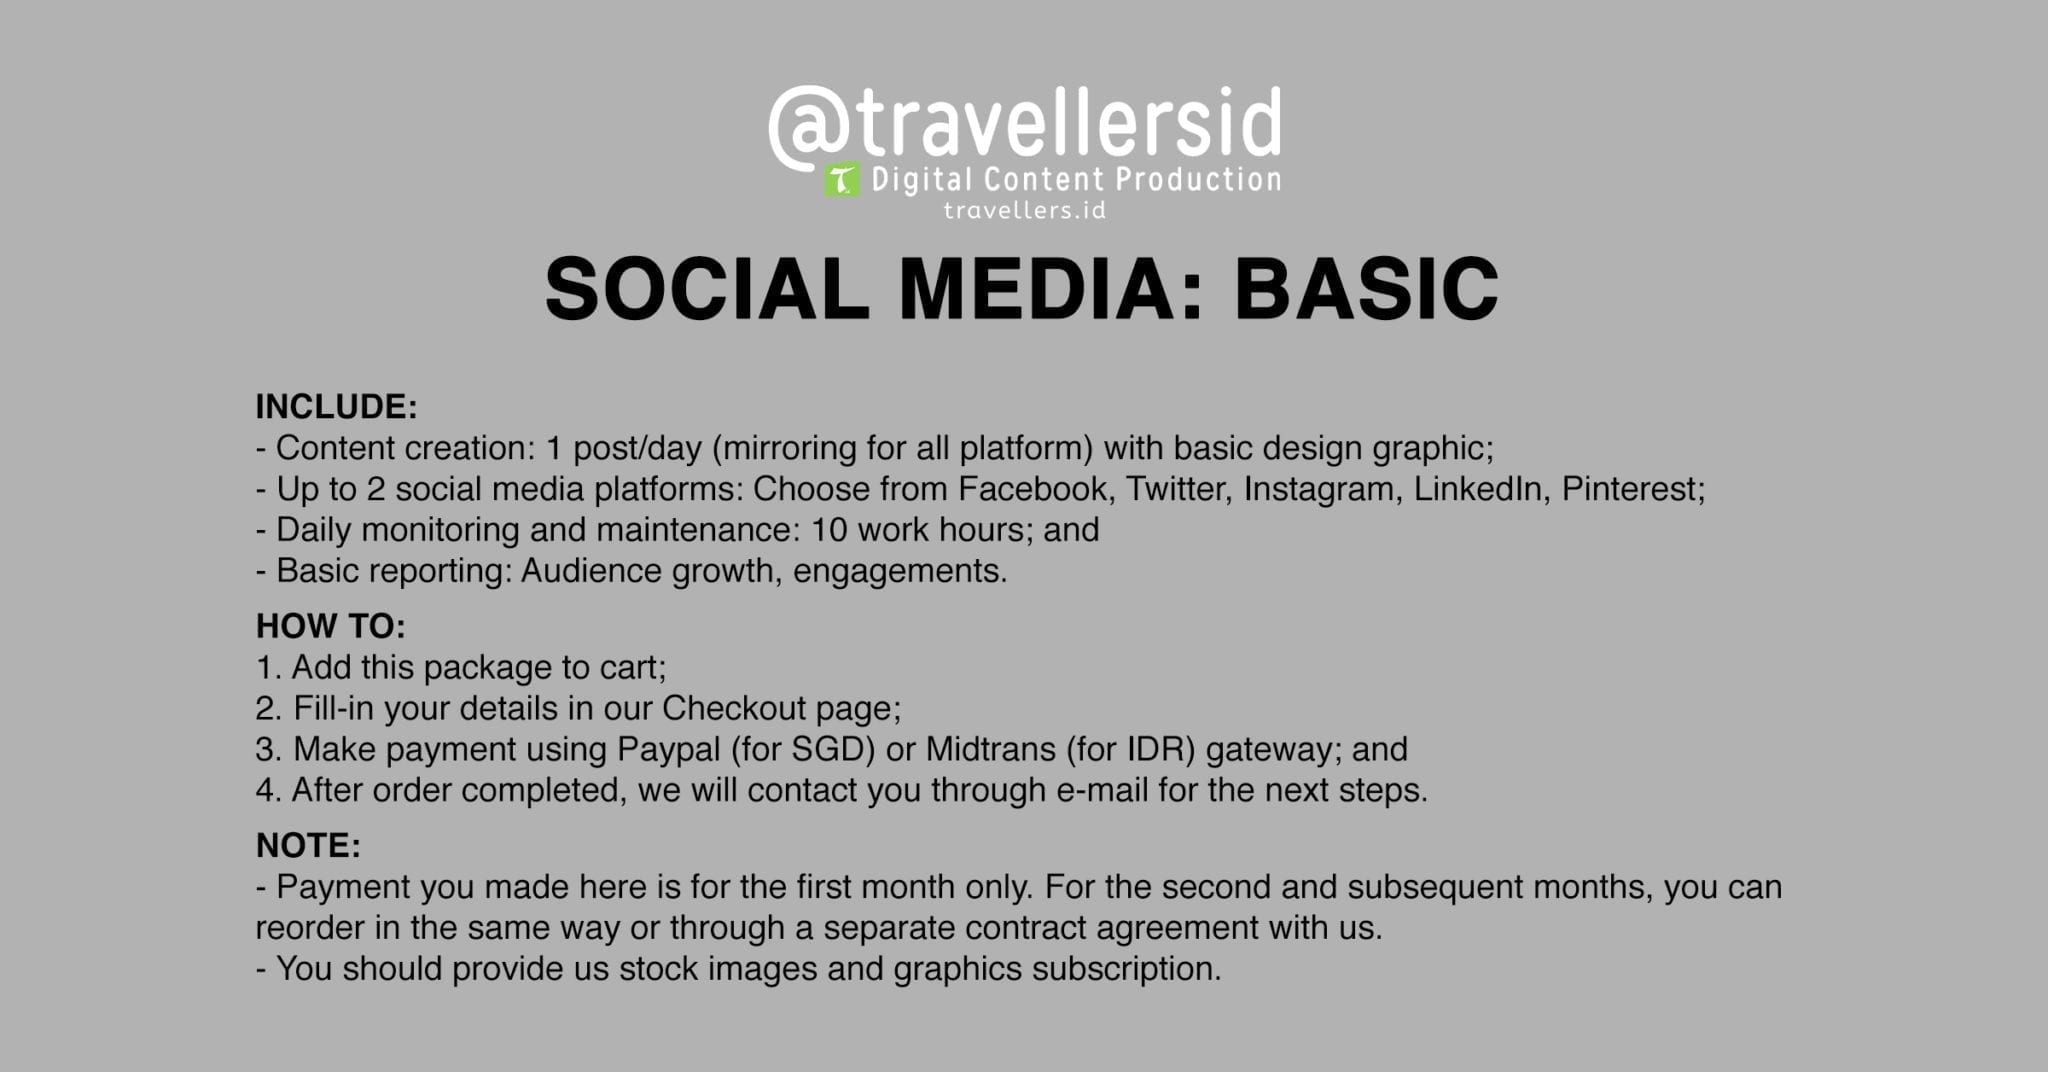 @TravellersID Social Media Services - Basic